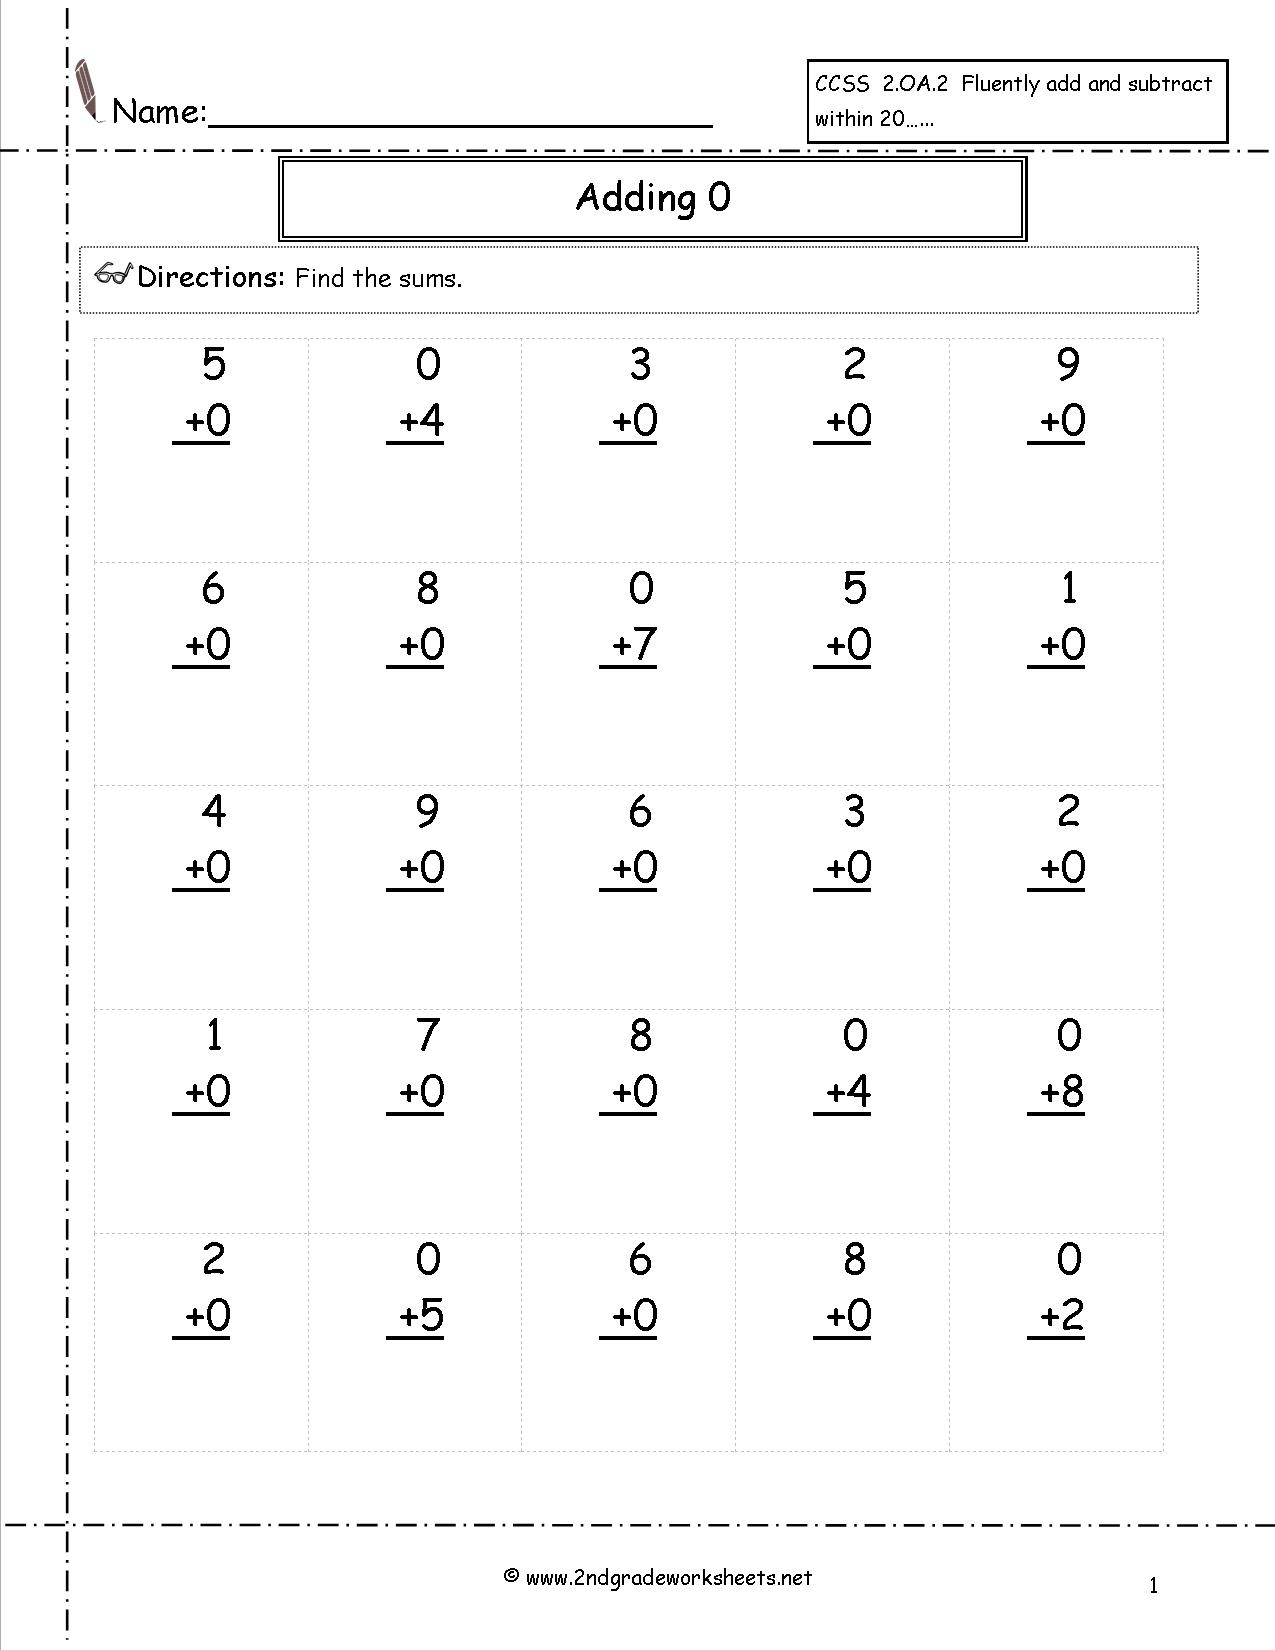 13 Best Images Of Counting Worksheets 1 20